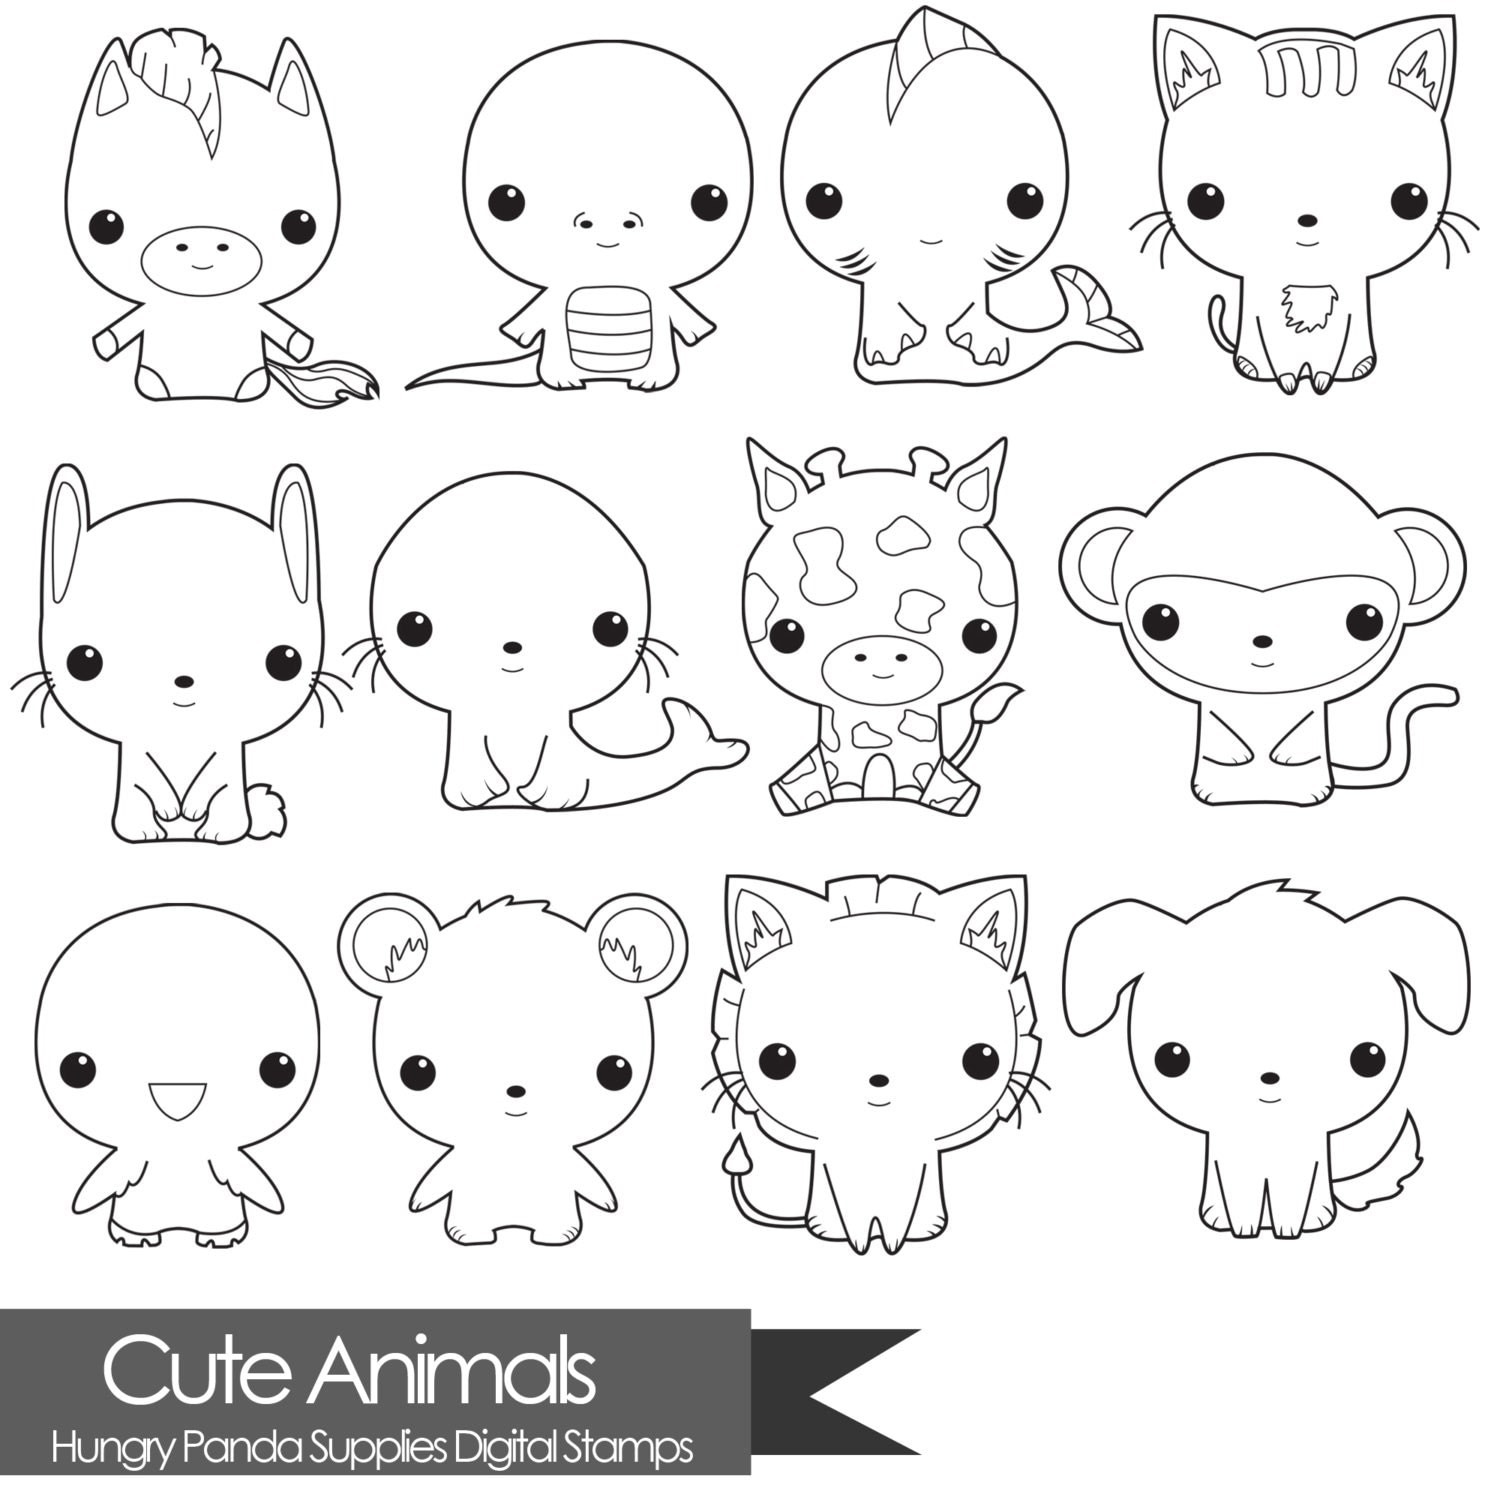 Line Drawings Of Cute Animals : Animal digital stamp cute stamps commercial use